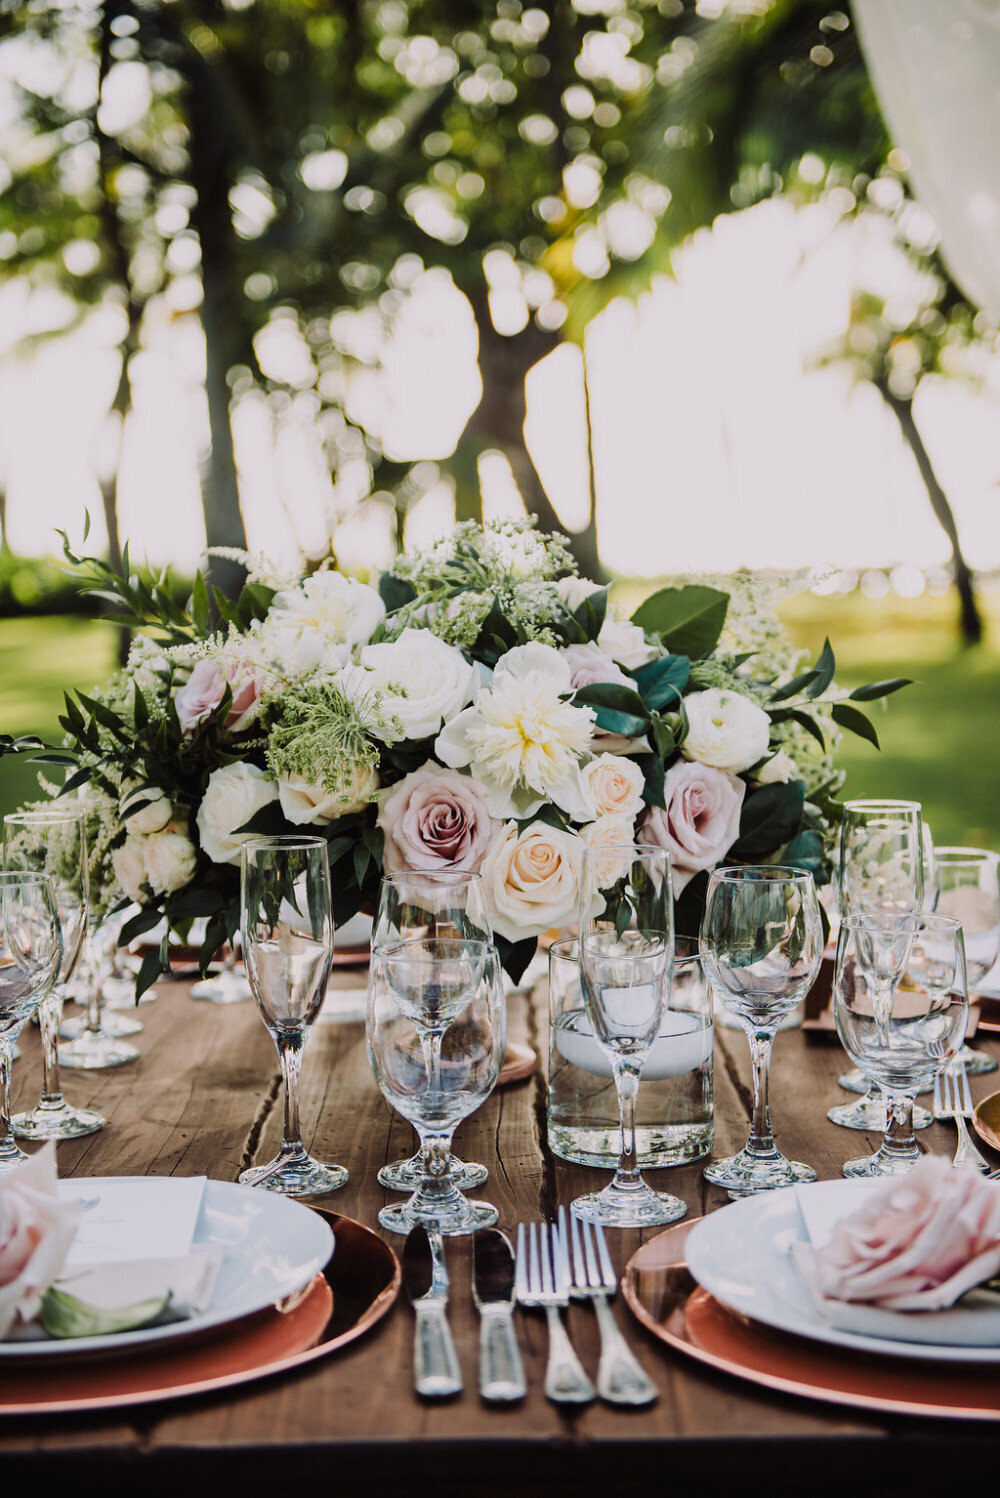 Finishing Touch Hawaii Wedding Planning Design Planner Designer Corporate Social Non Profit Sandra Williams8